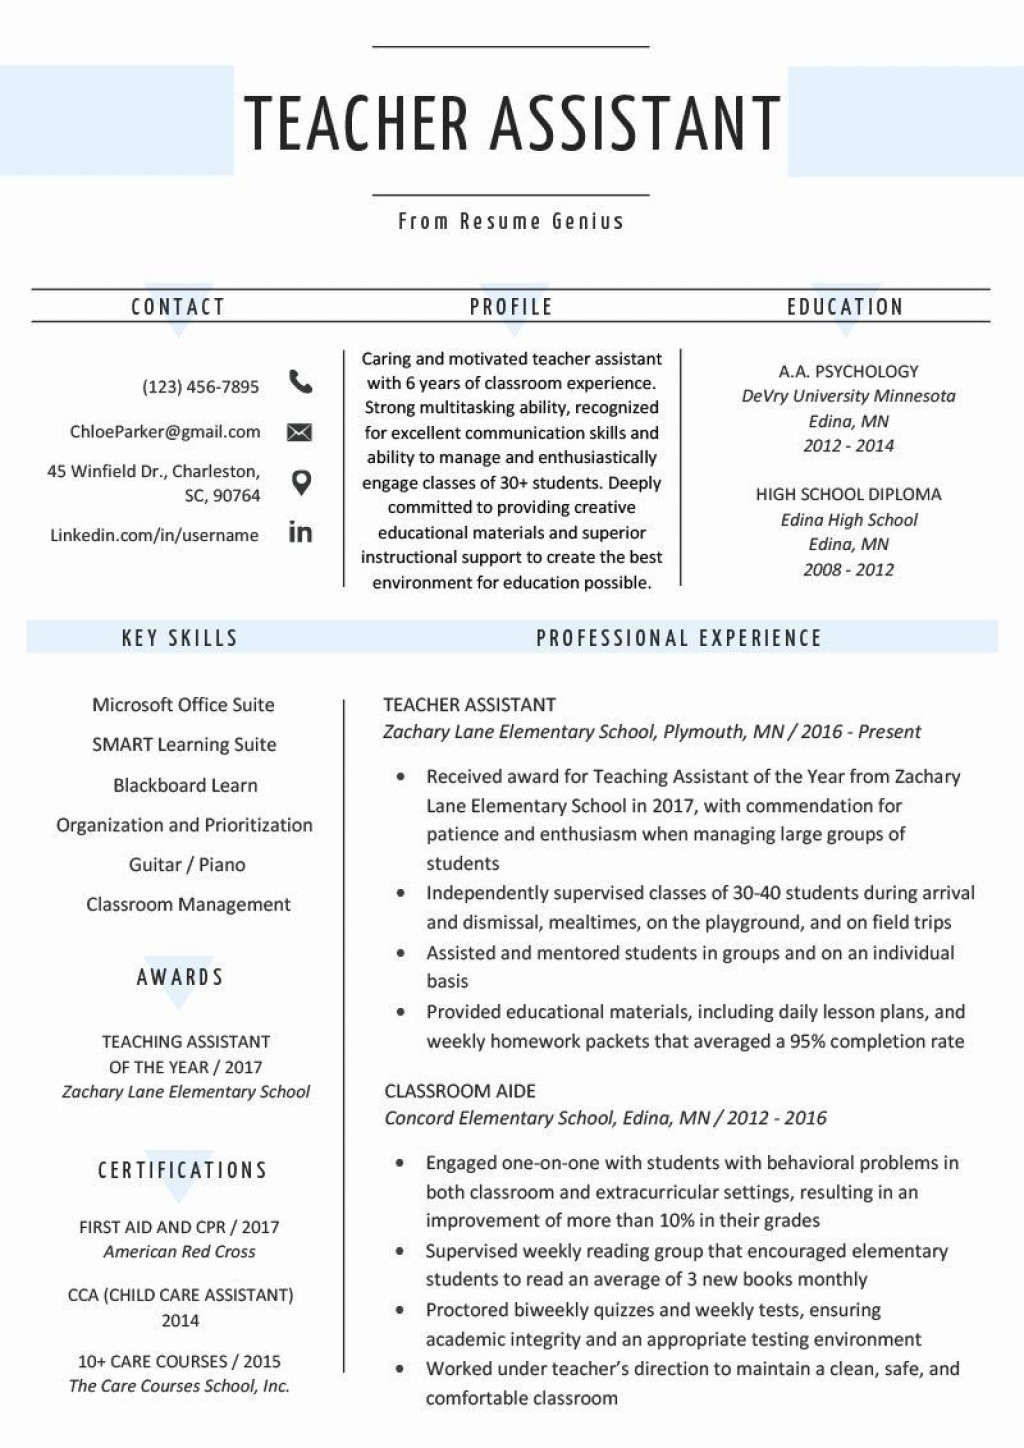 000 Simple Cv Template For Teaching Concept  Sample Teacher Assistant Modern Word Free Download JobLarge